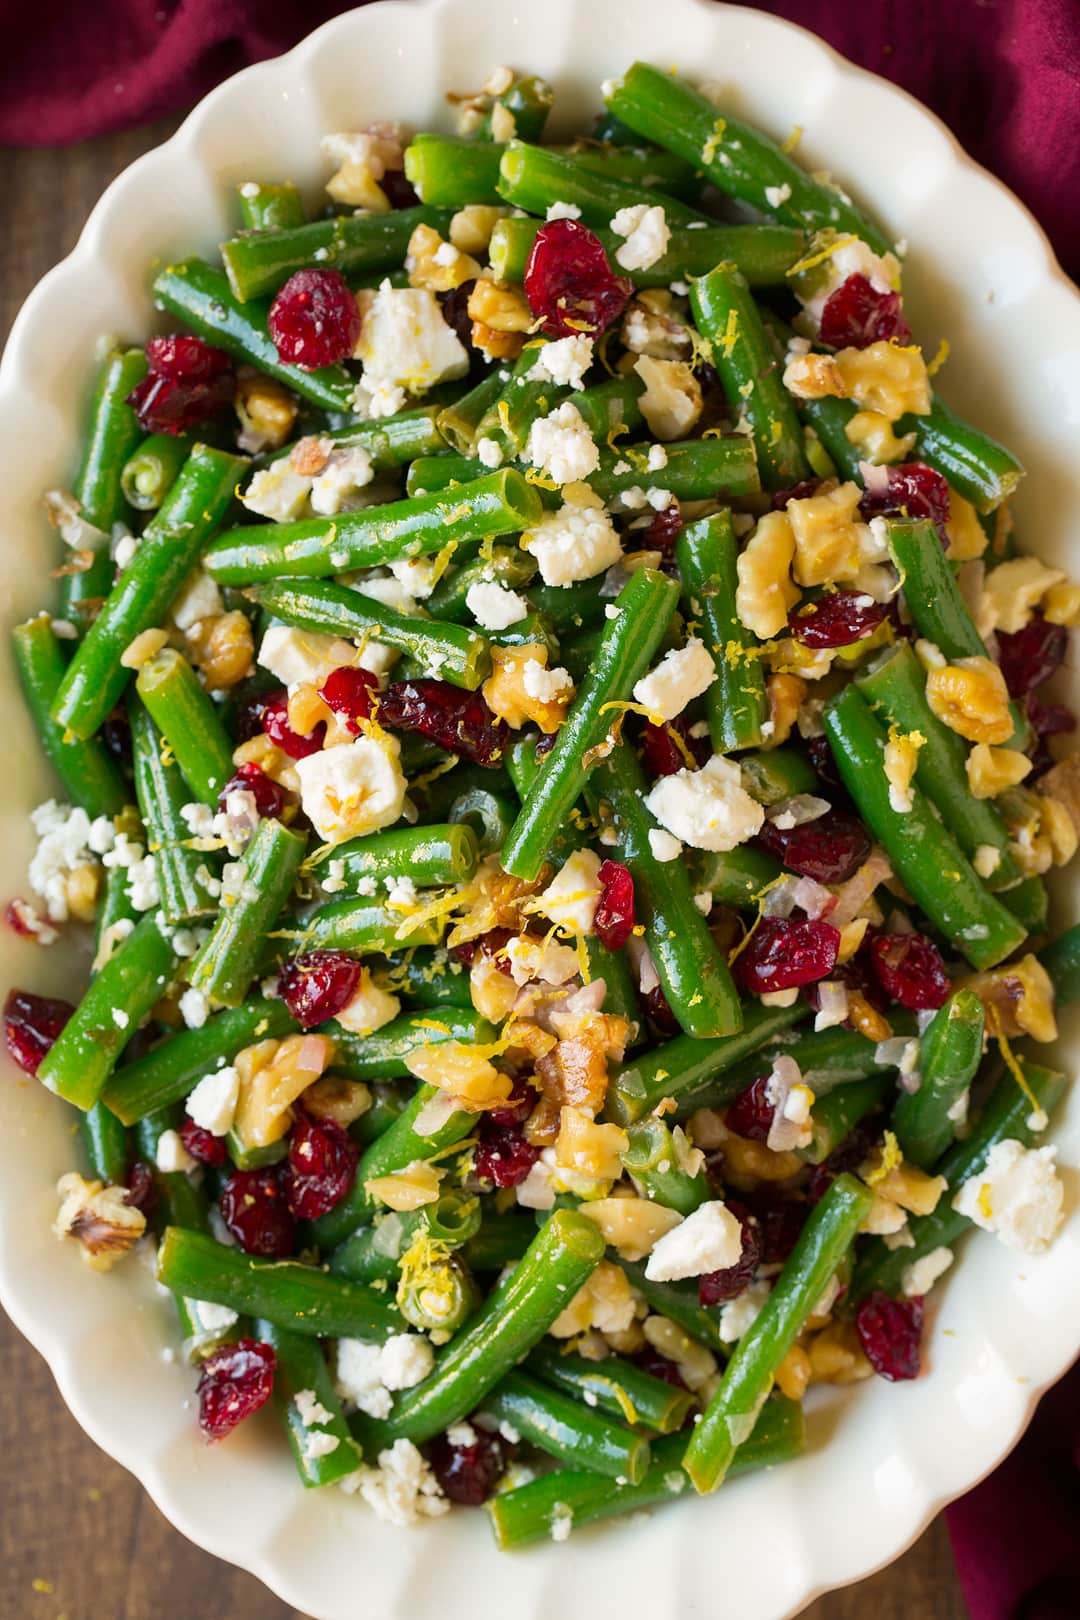 Green beans recipe with lemon butter cranberries walnuts and feta